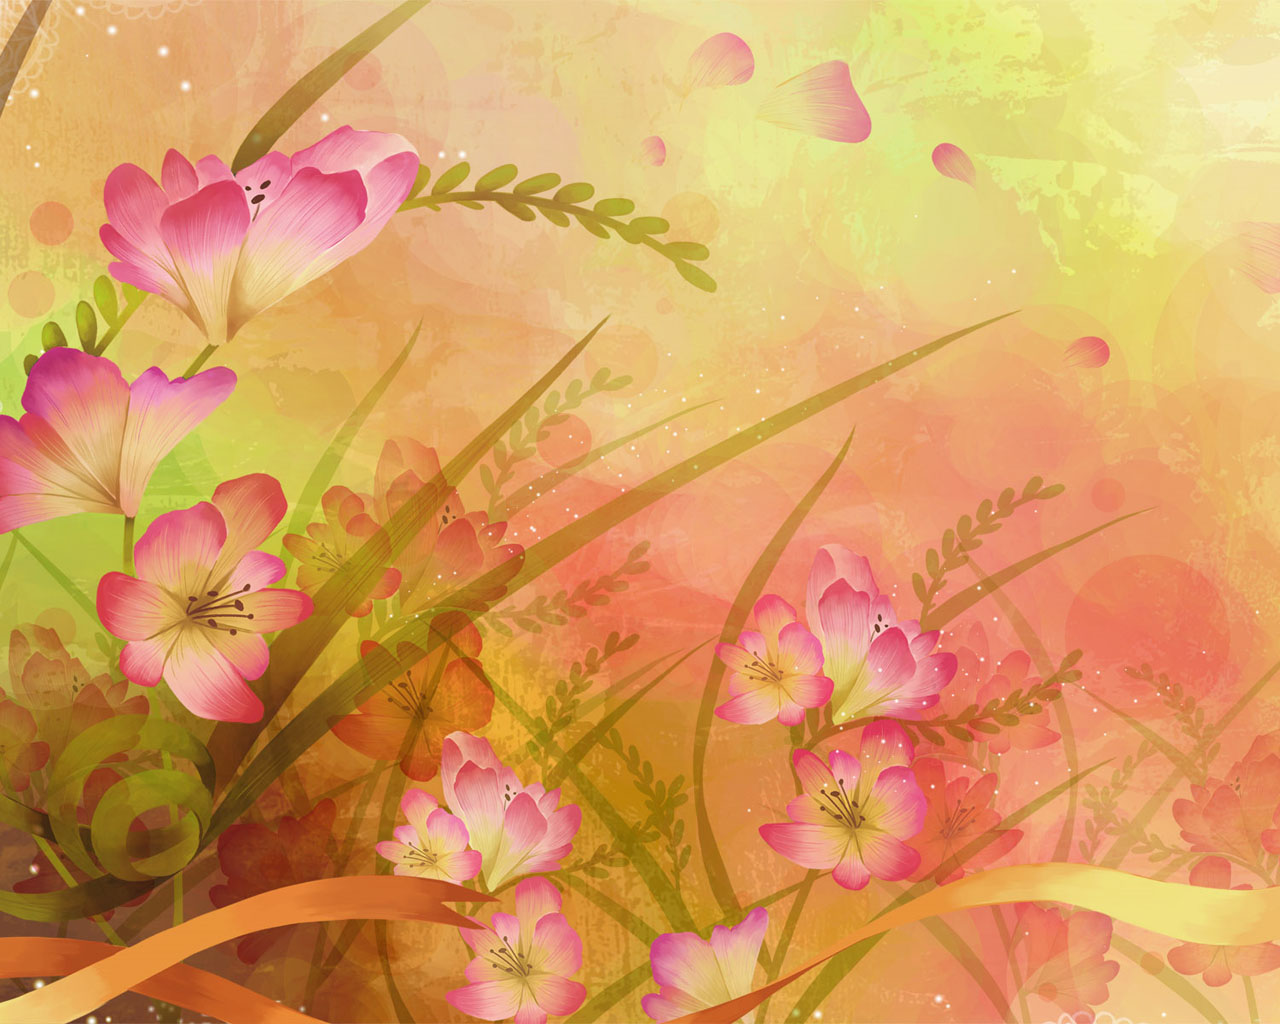 17 Floral Background Graphics Images - Free Abstract ...